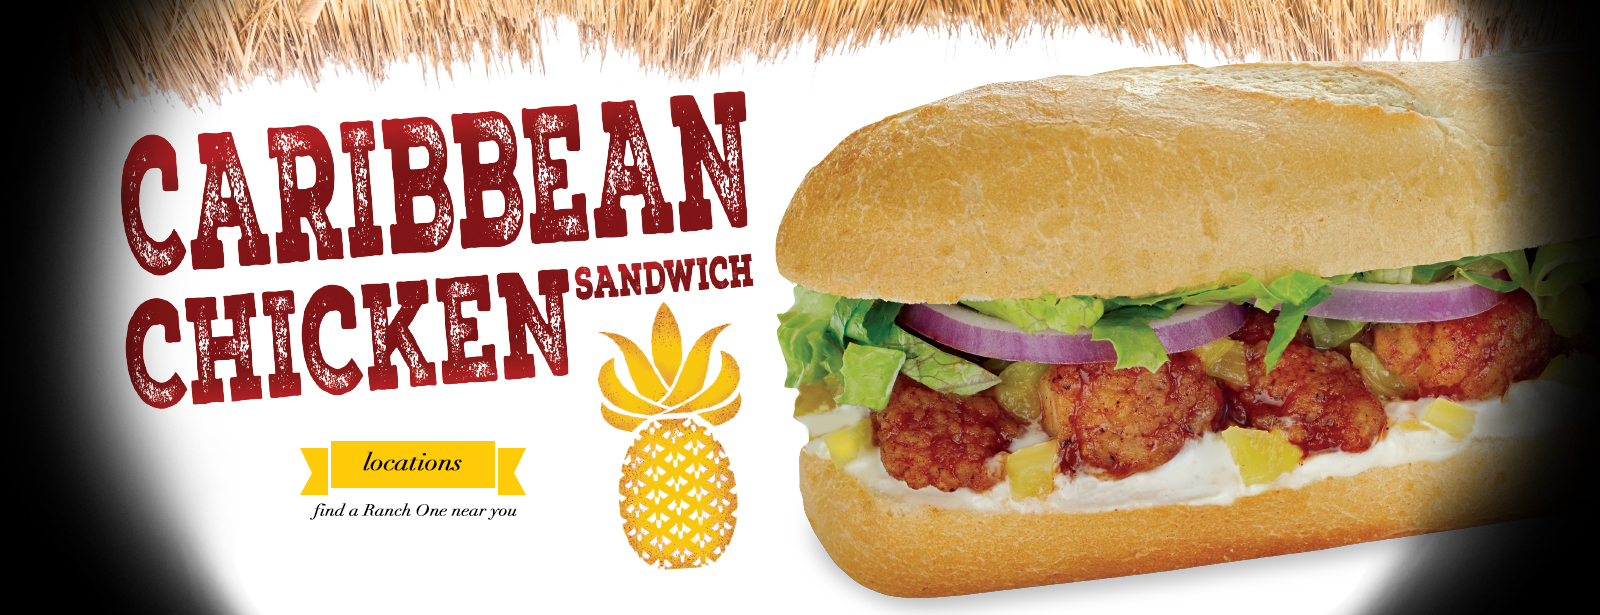 Caribbean Chicken Sandwich